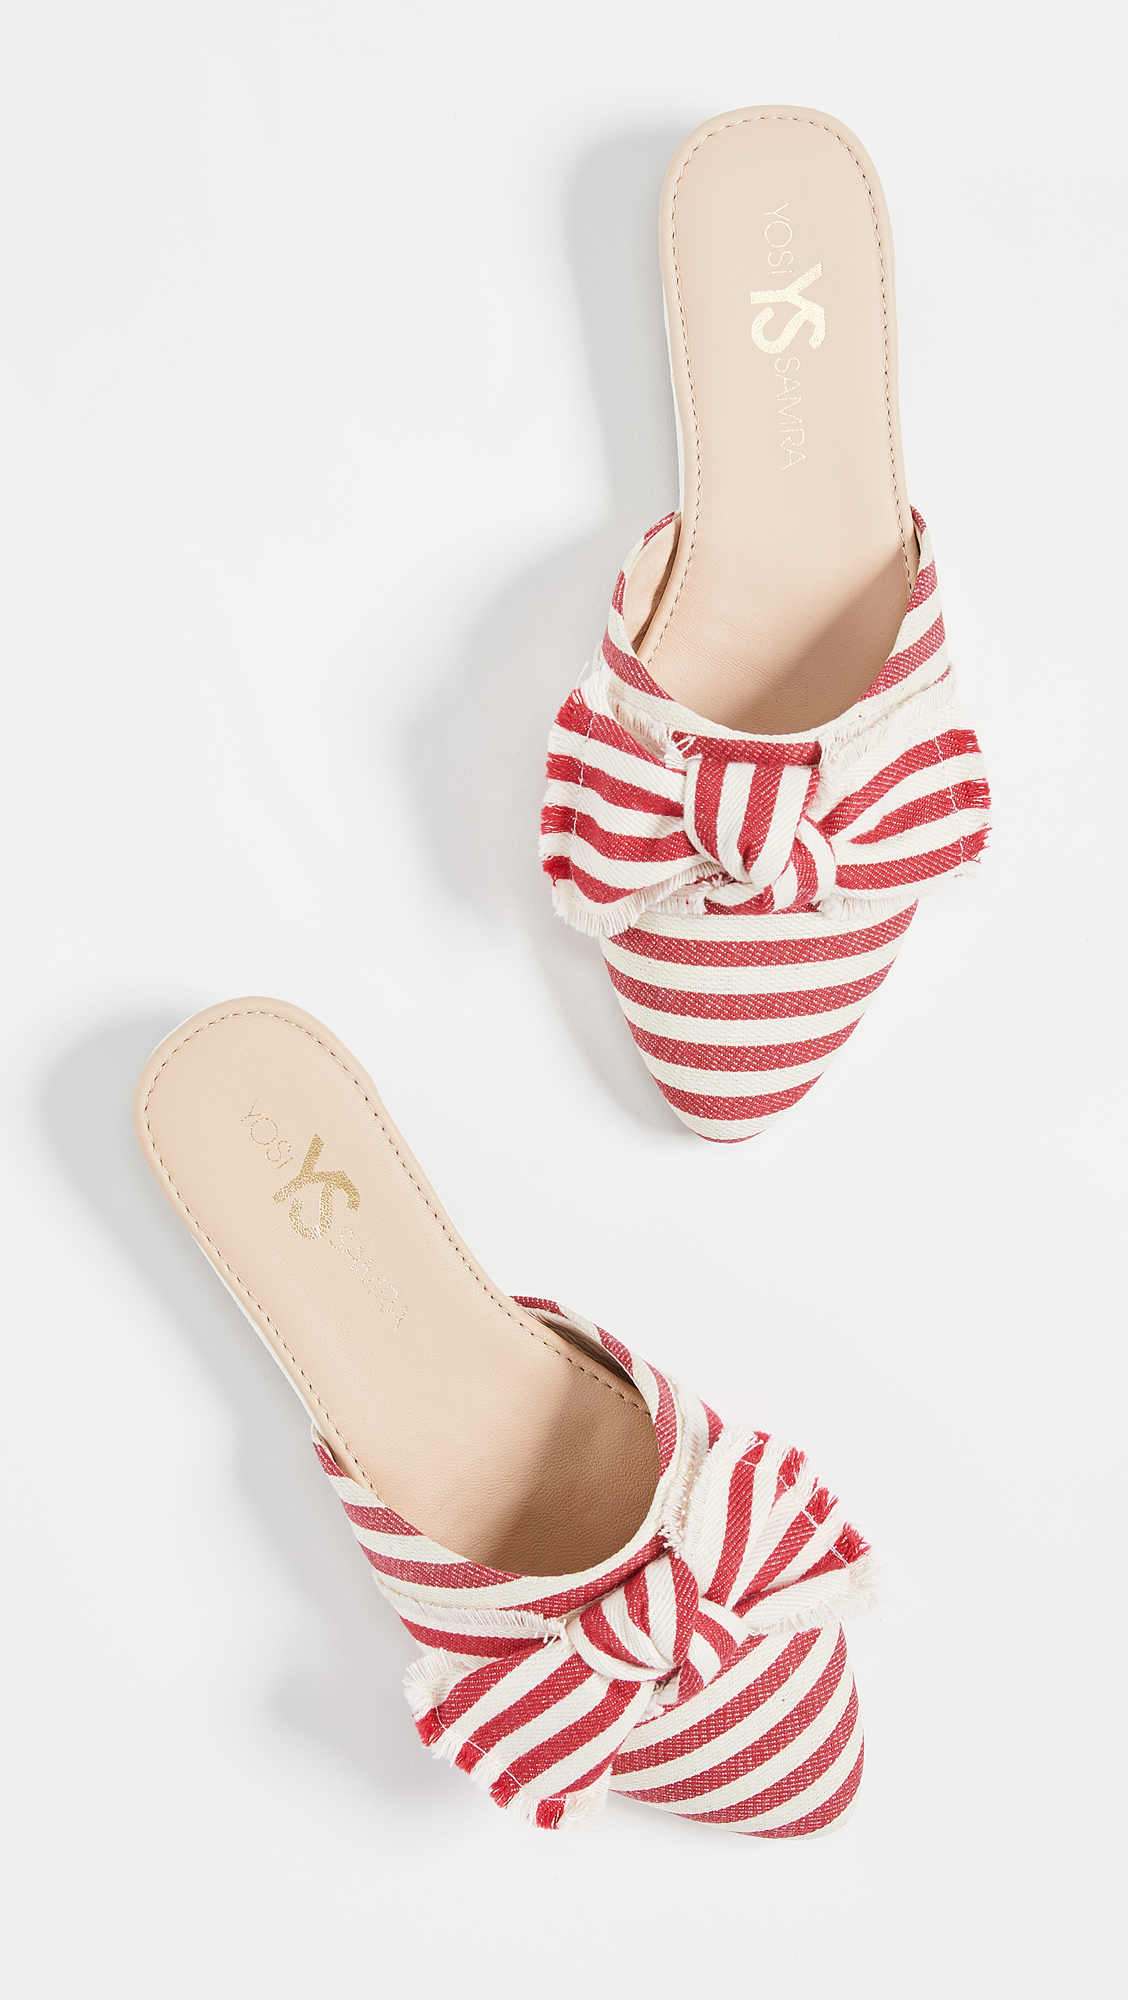 Red and White Striped Flats with Bow